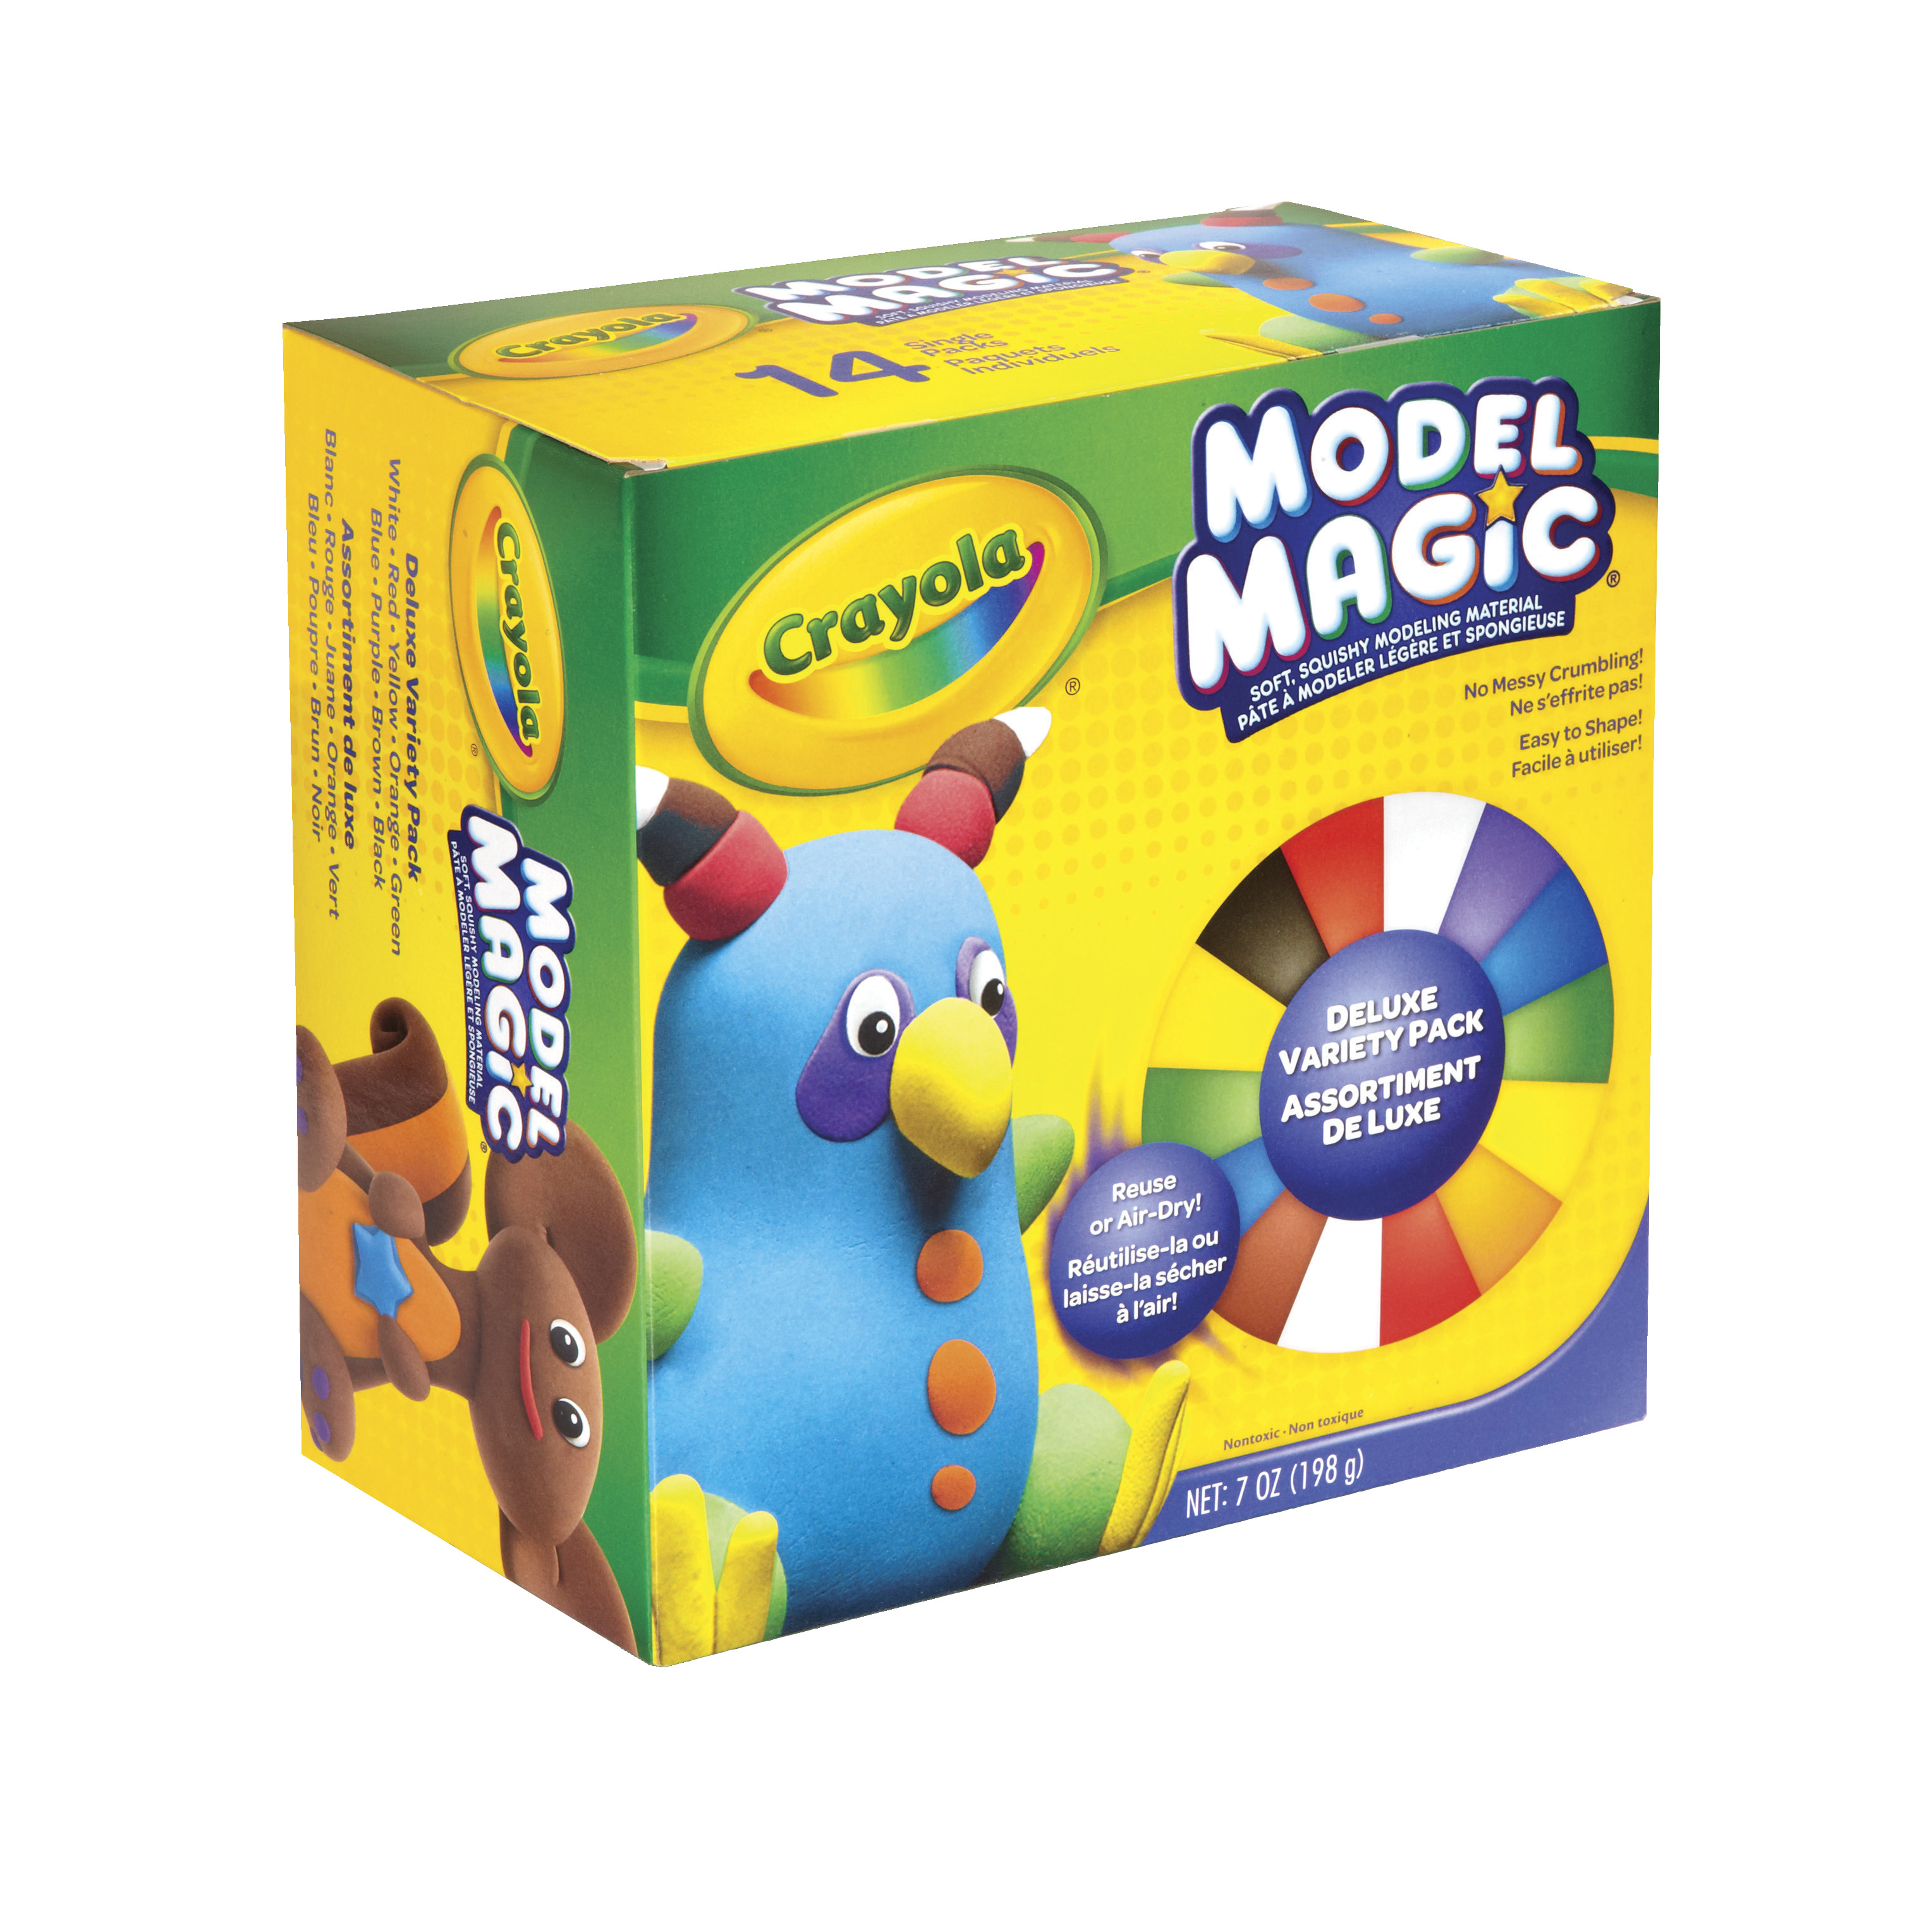 Crayola Model Magic Non-Toxic Modeling Dough Deluxe Variety Pack, 7 oz, Assorted Color,... by Crayola LLC